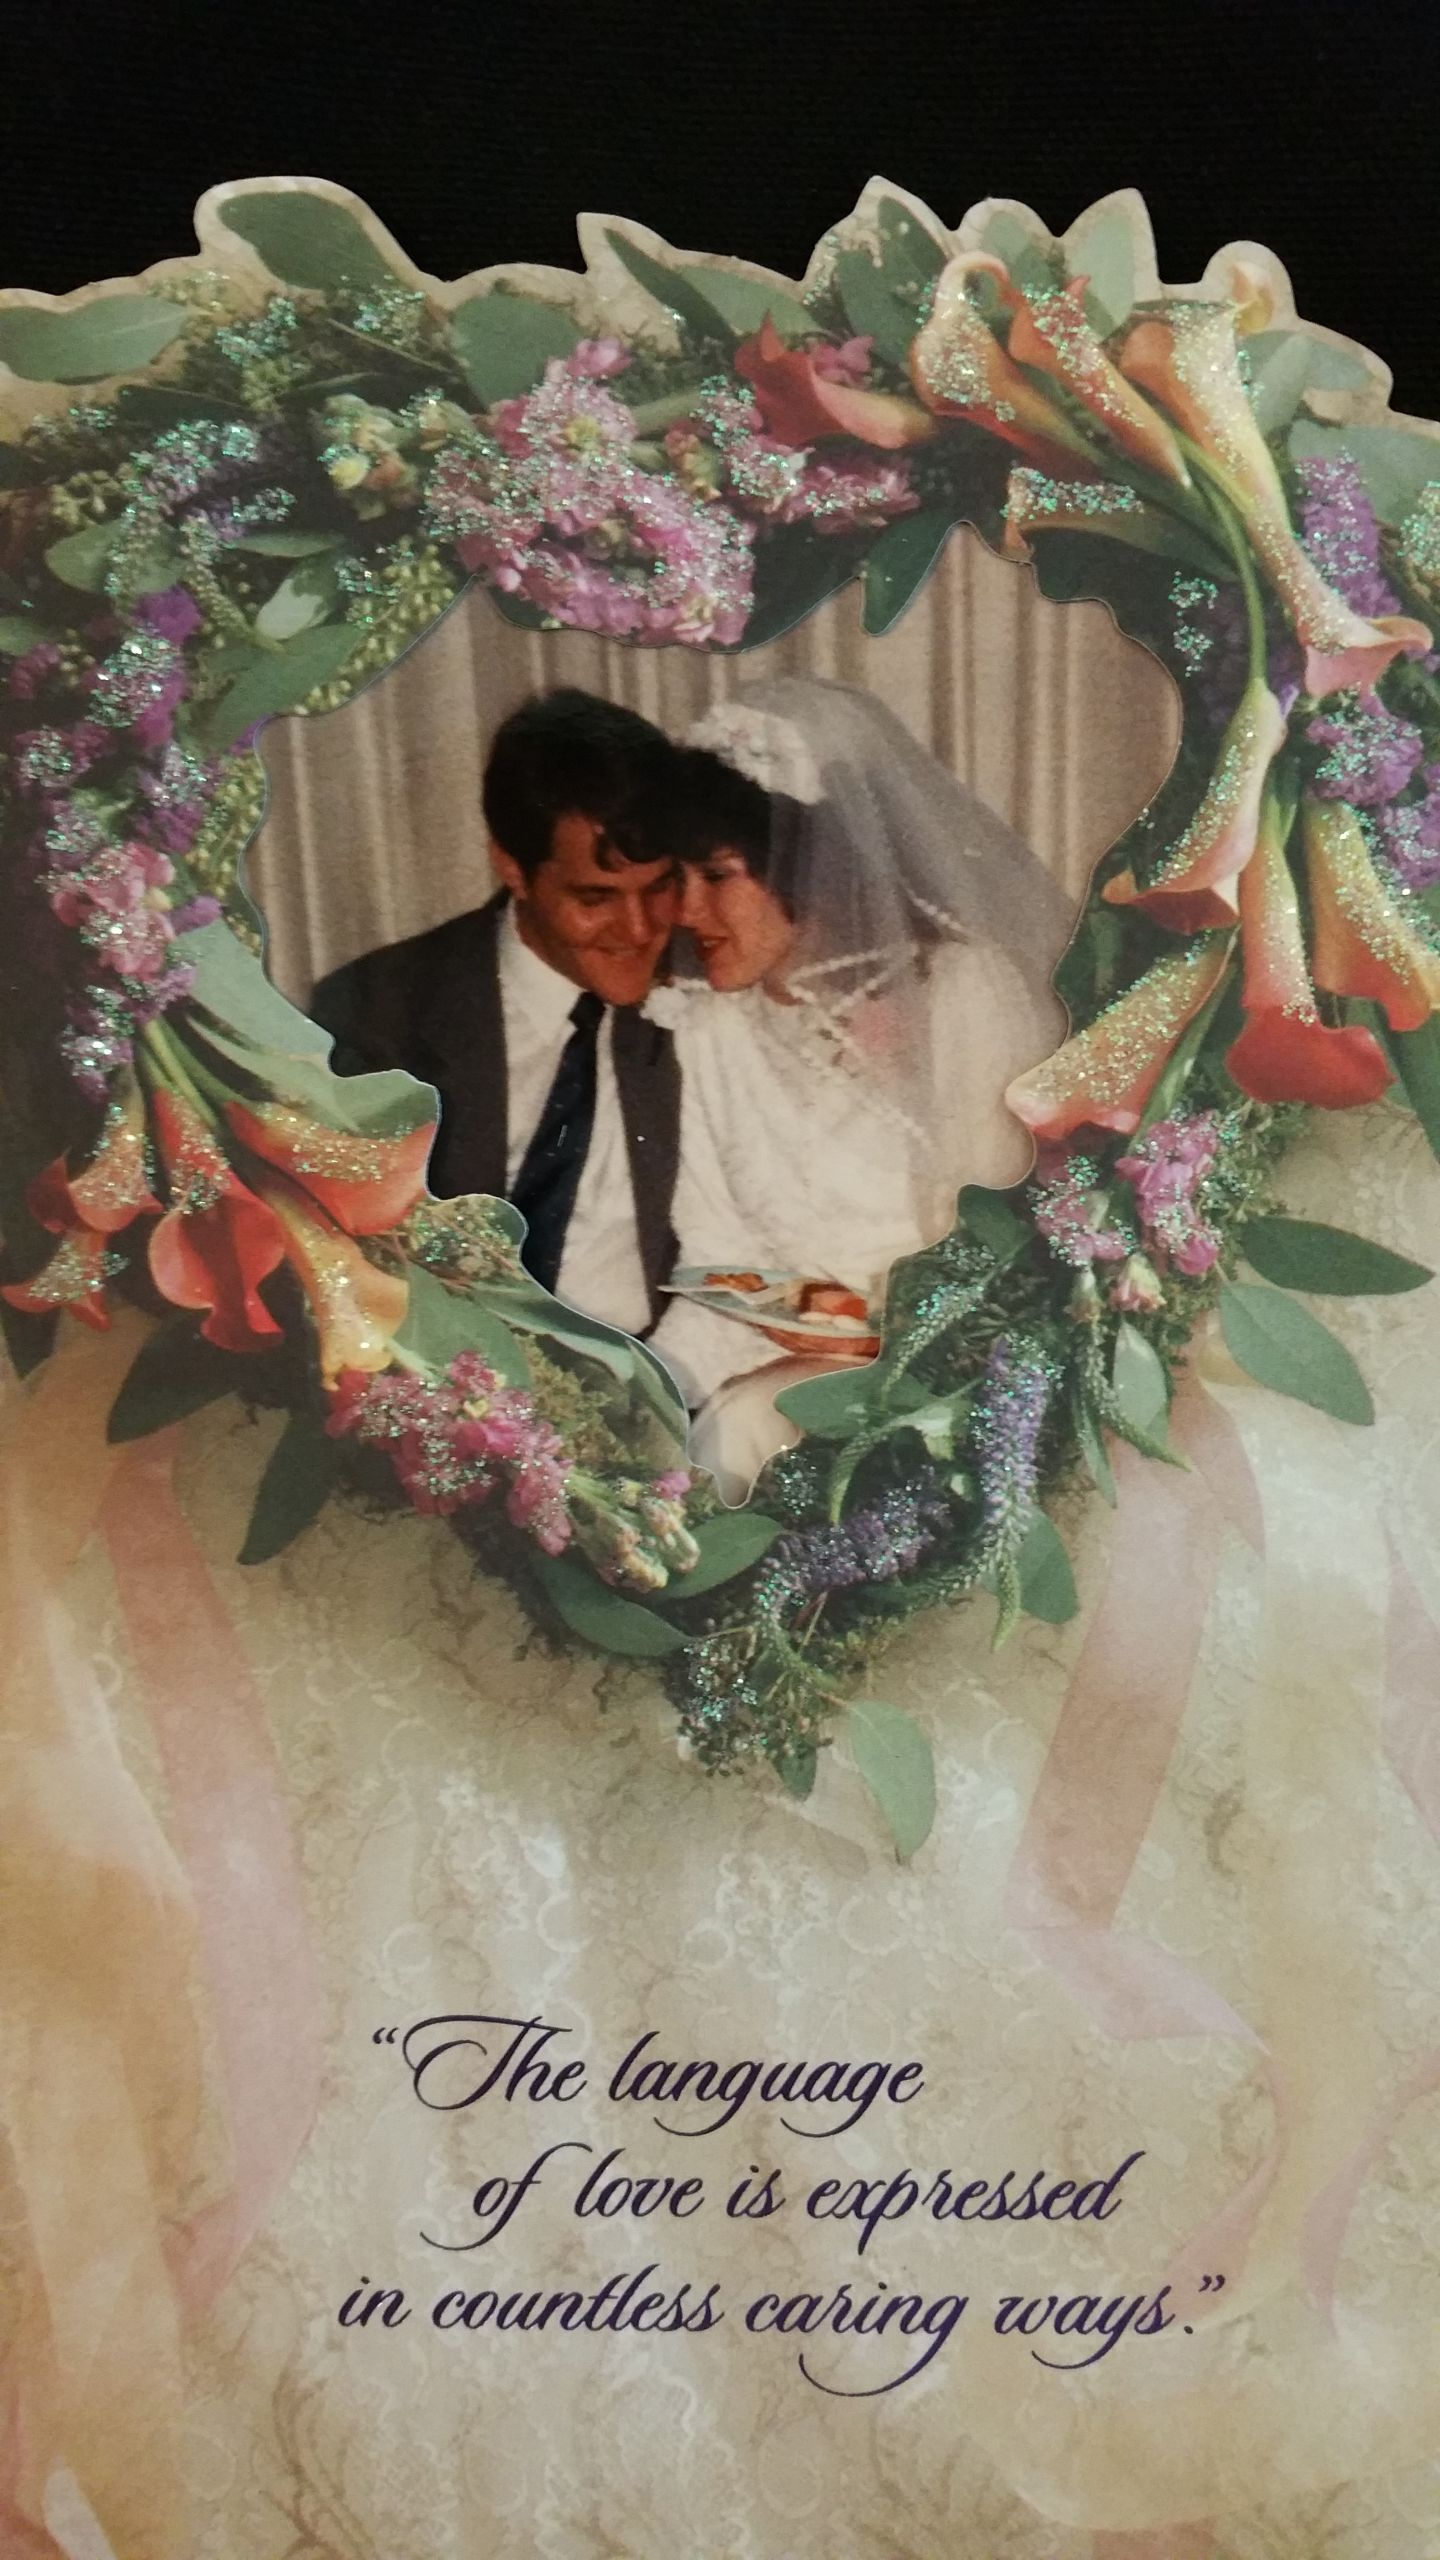 Wedding Anniversary After Death Of Spouse Quotes  Anniversary after Death